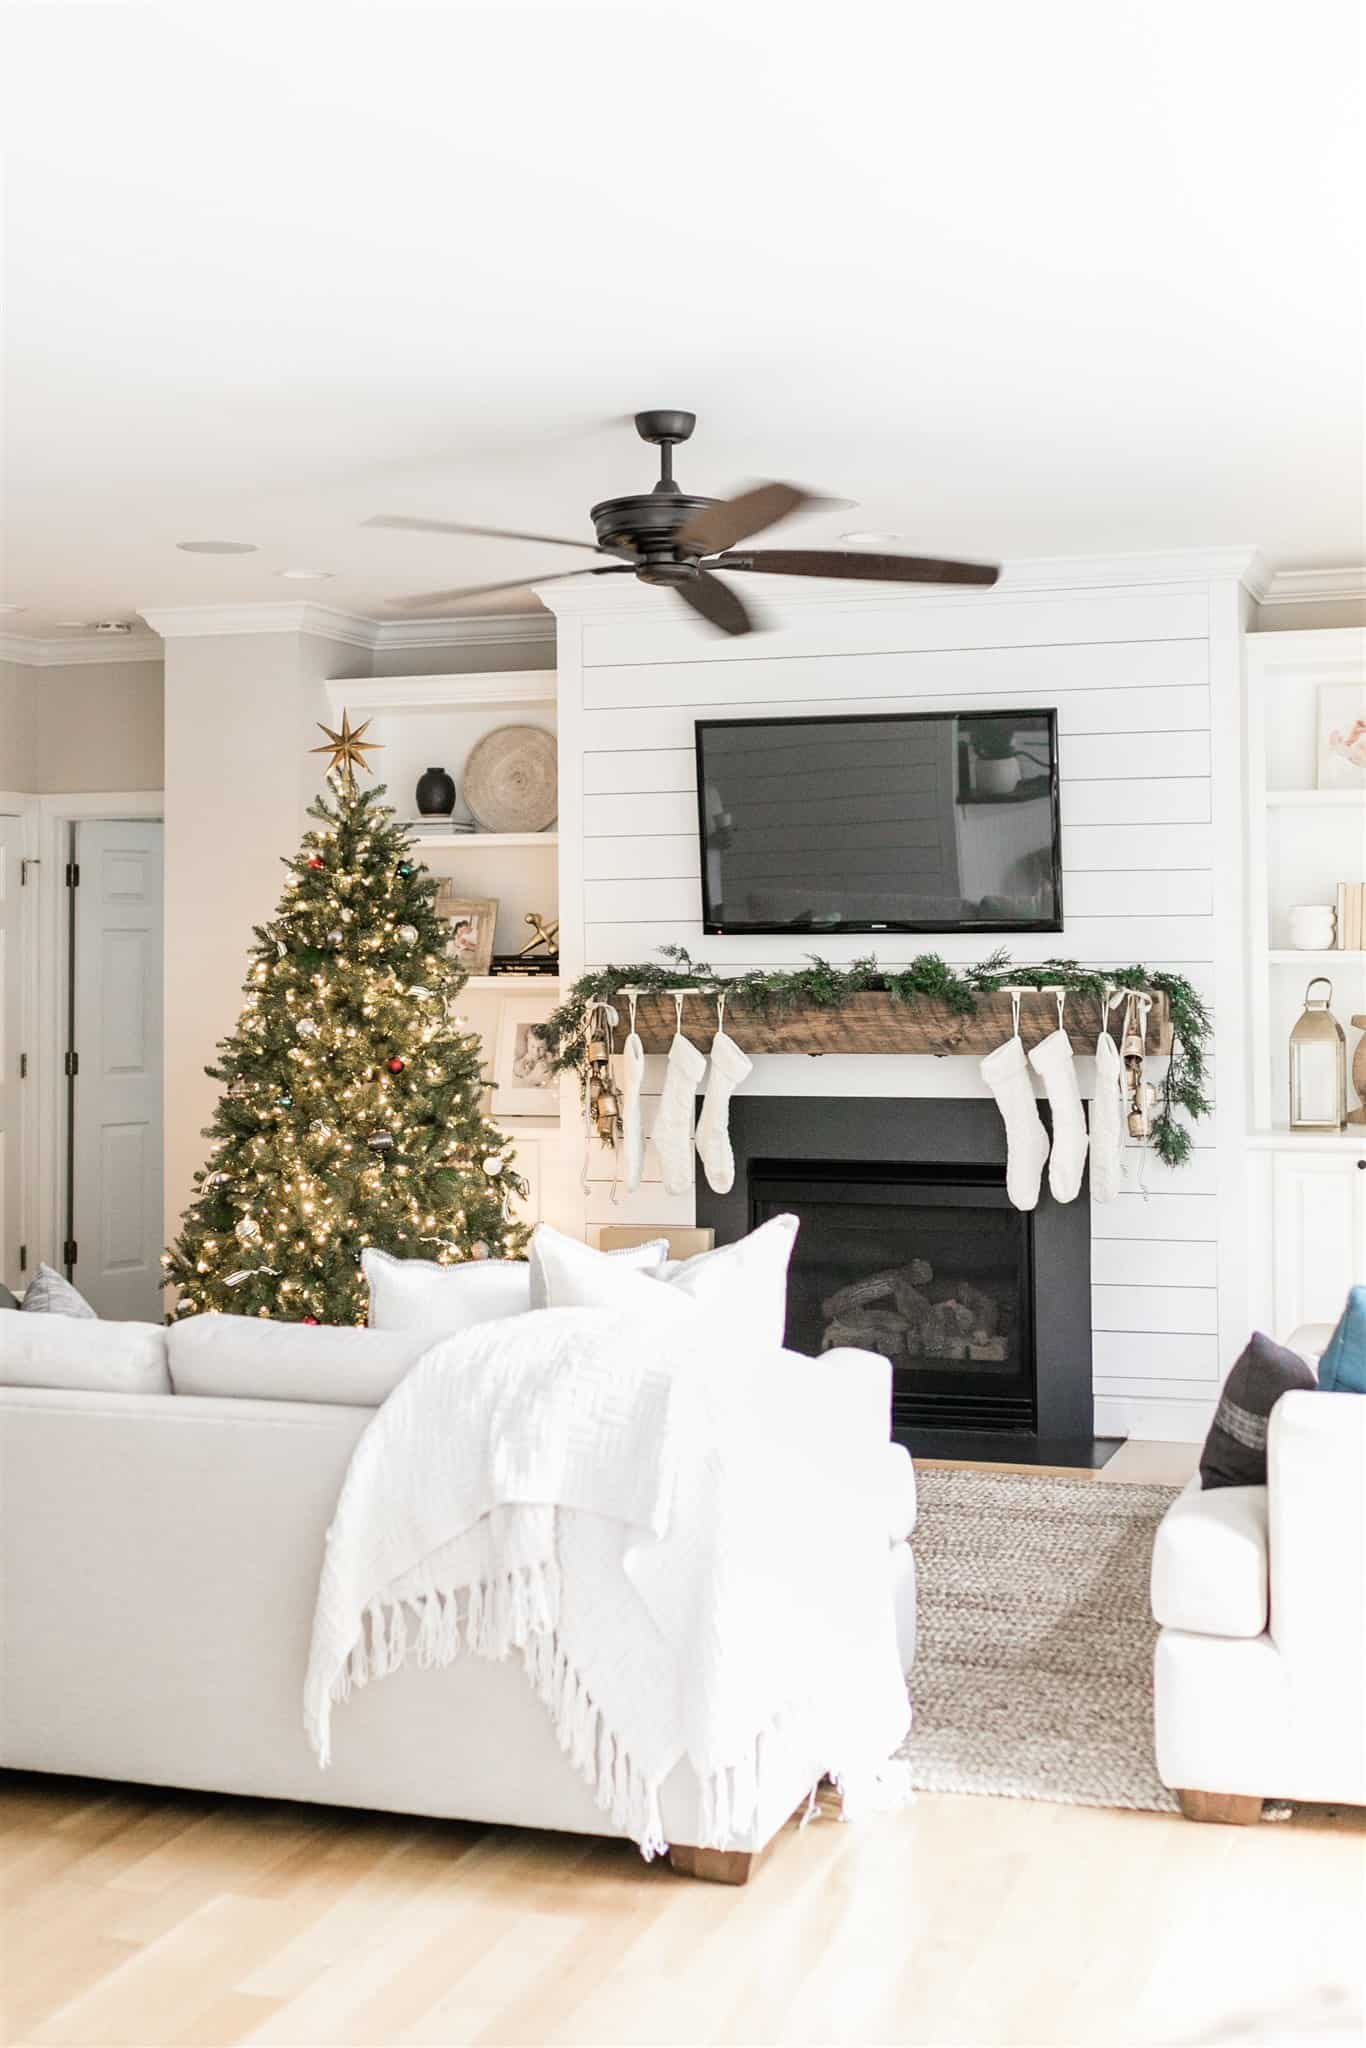 How to decorate your mantel for Christmas with simple garland, black and white striped ribbon, bells, and neutral stockings.  Also, a look at our Christmas decor from last year.  A simple and neutral Christmas decor inspiration post.  #neutralchristmas #christmasdecor #simplechristmas #christmasinspiration #cedargarland